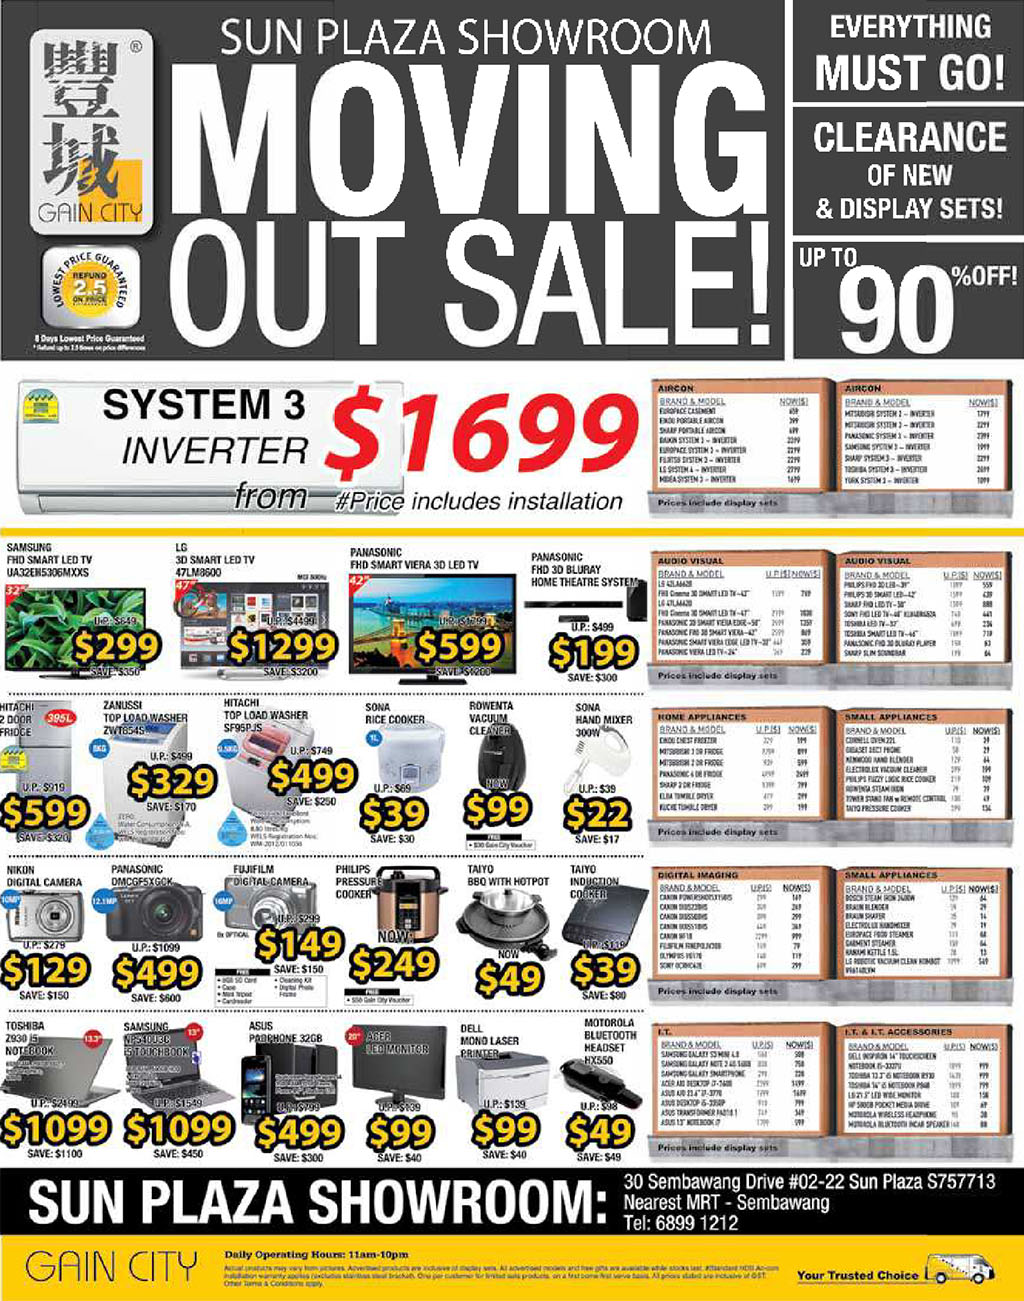 Gain City Sun Plaza Moving Out Sale, Display Sets Clearance & Storewide Discounts Up To 90%